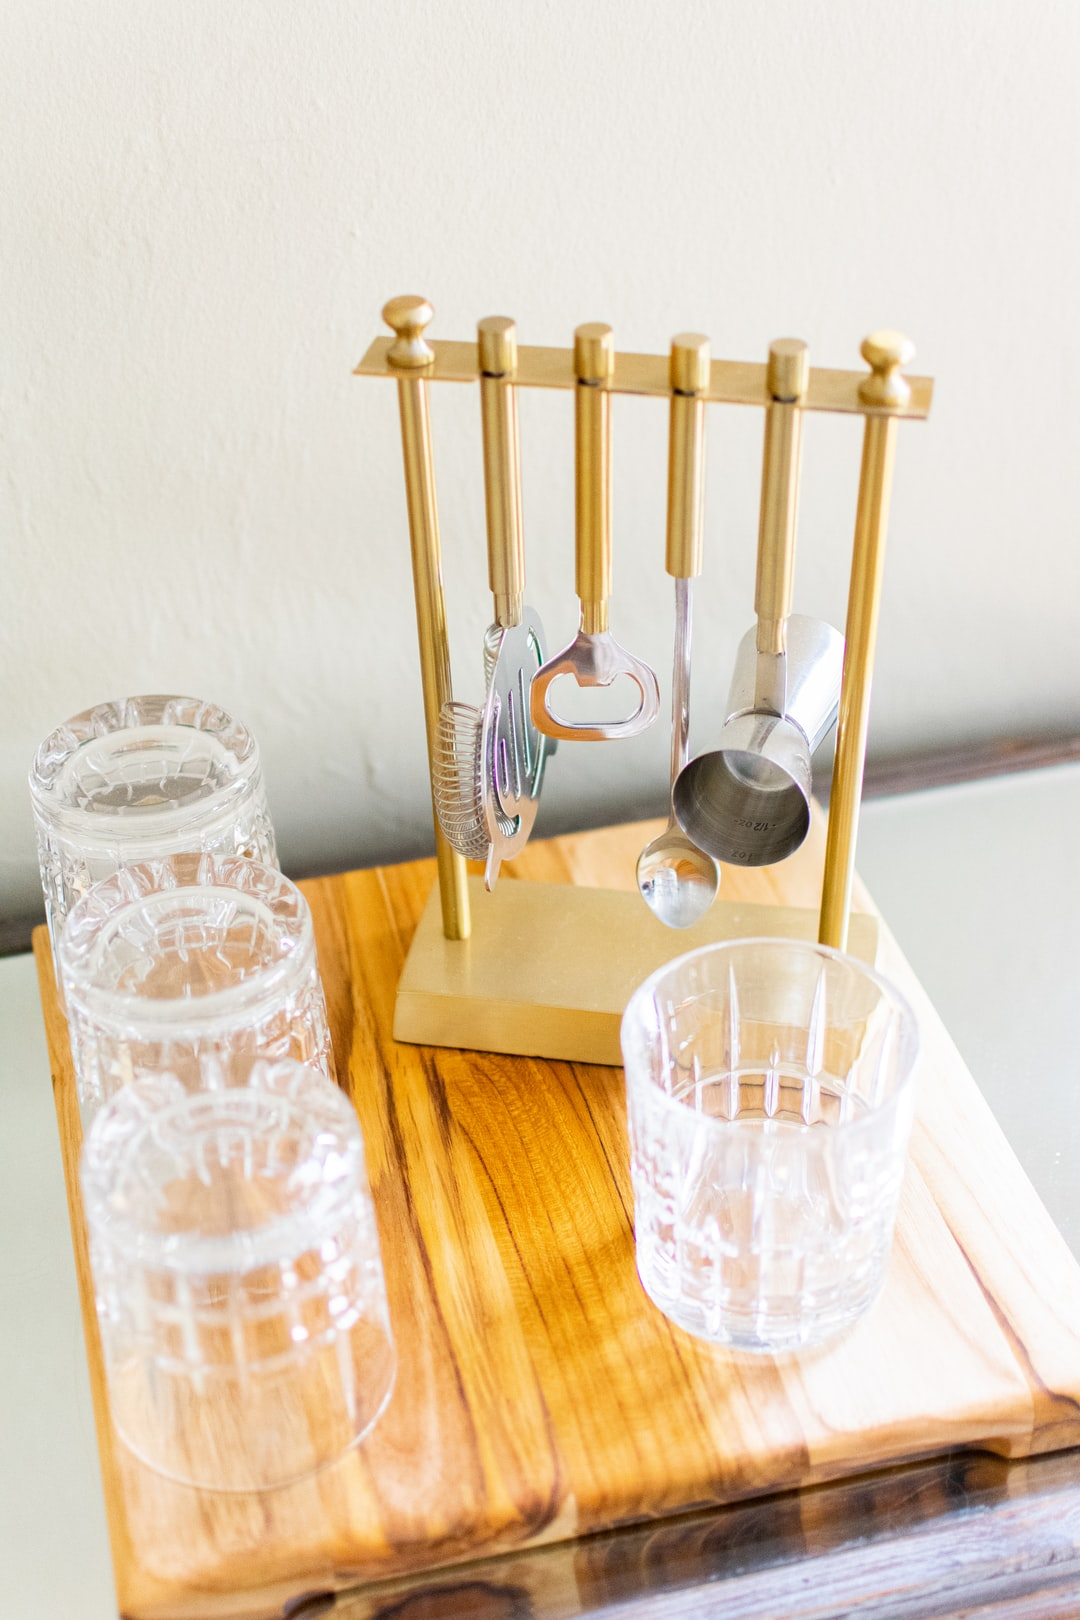 Golden cocktail bar set and glasses on wood square